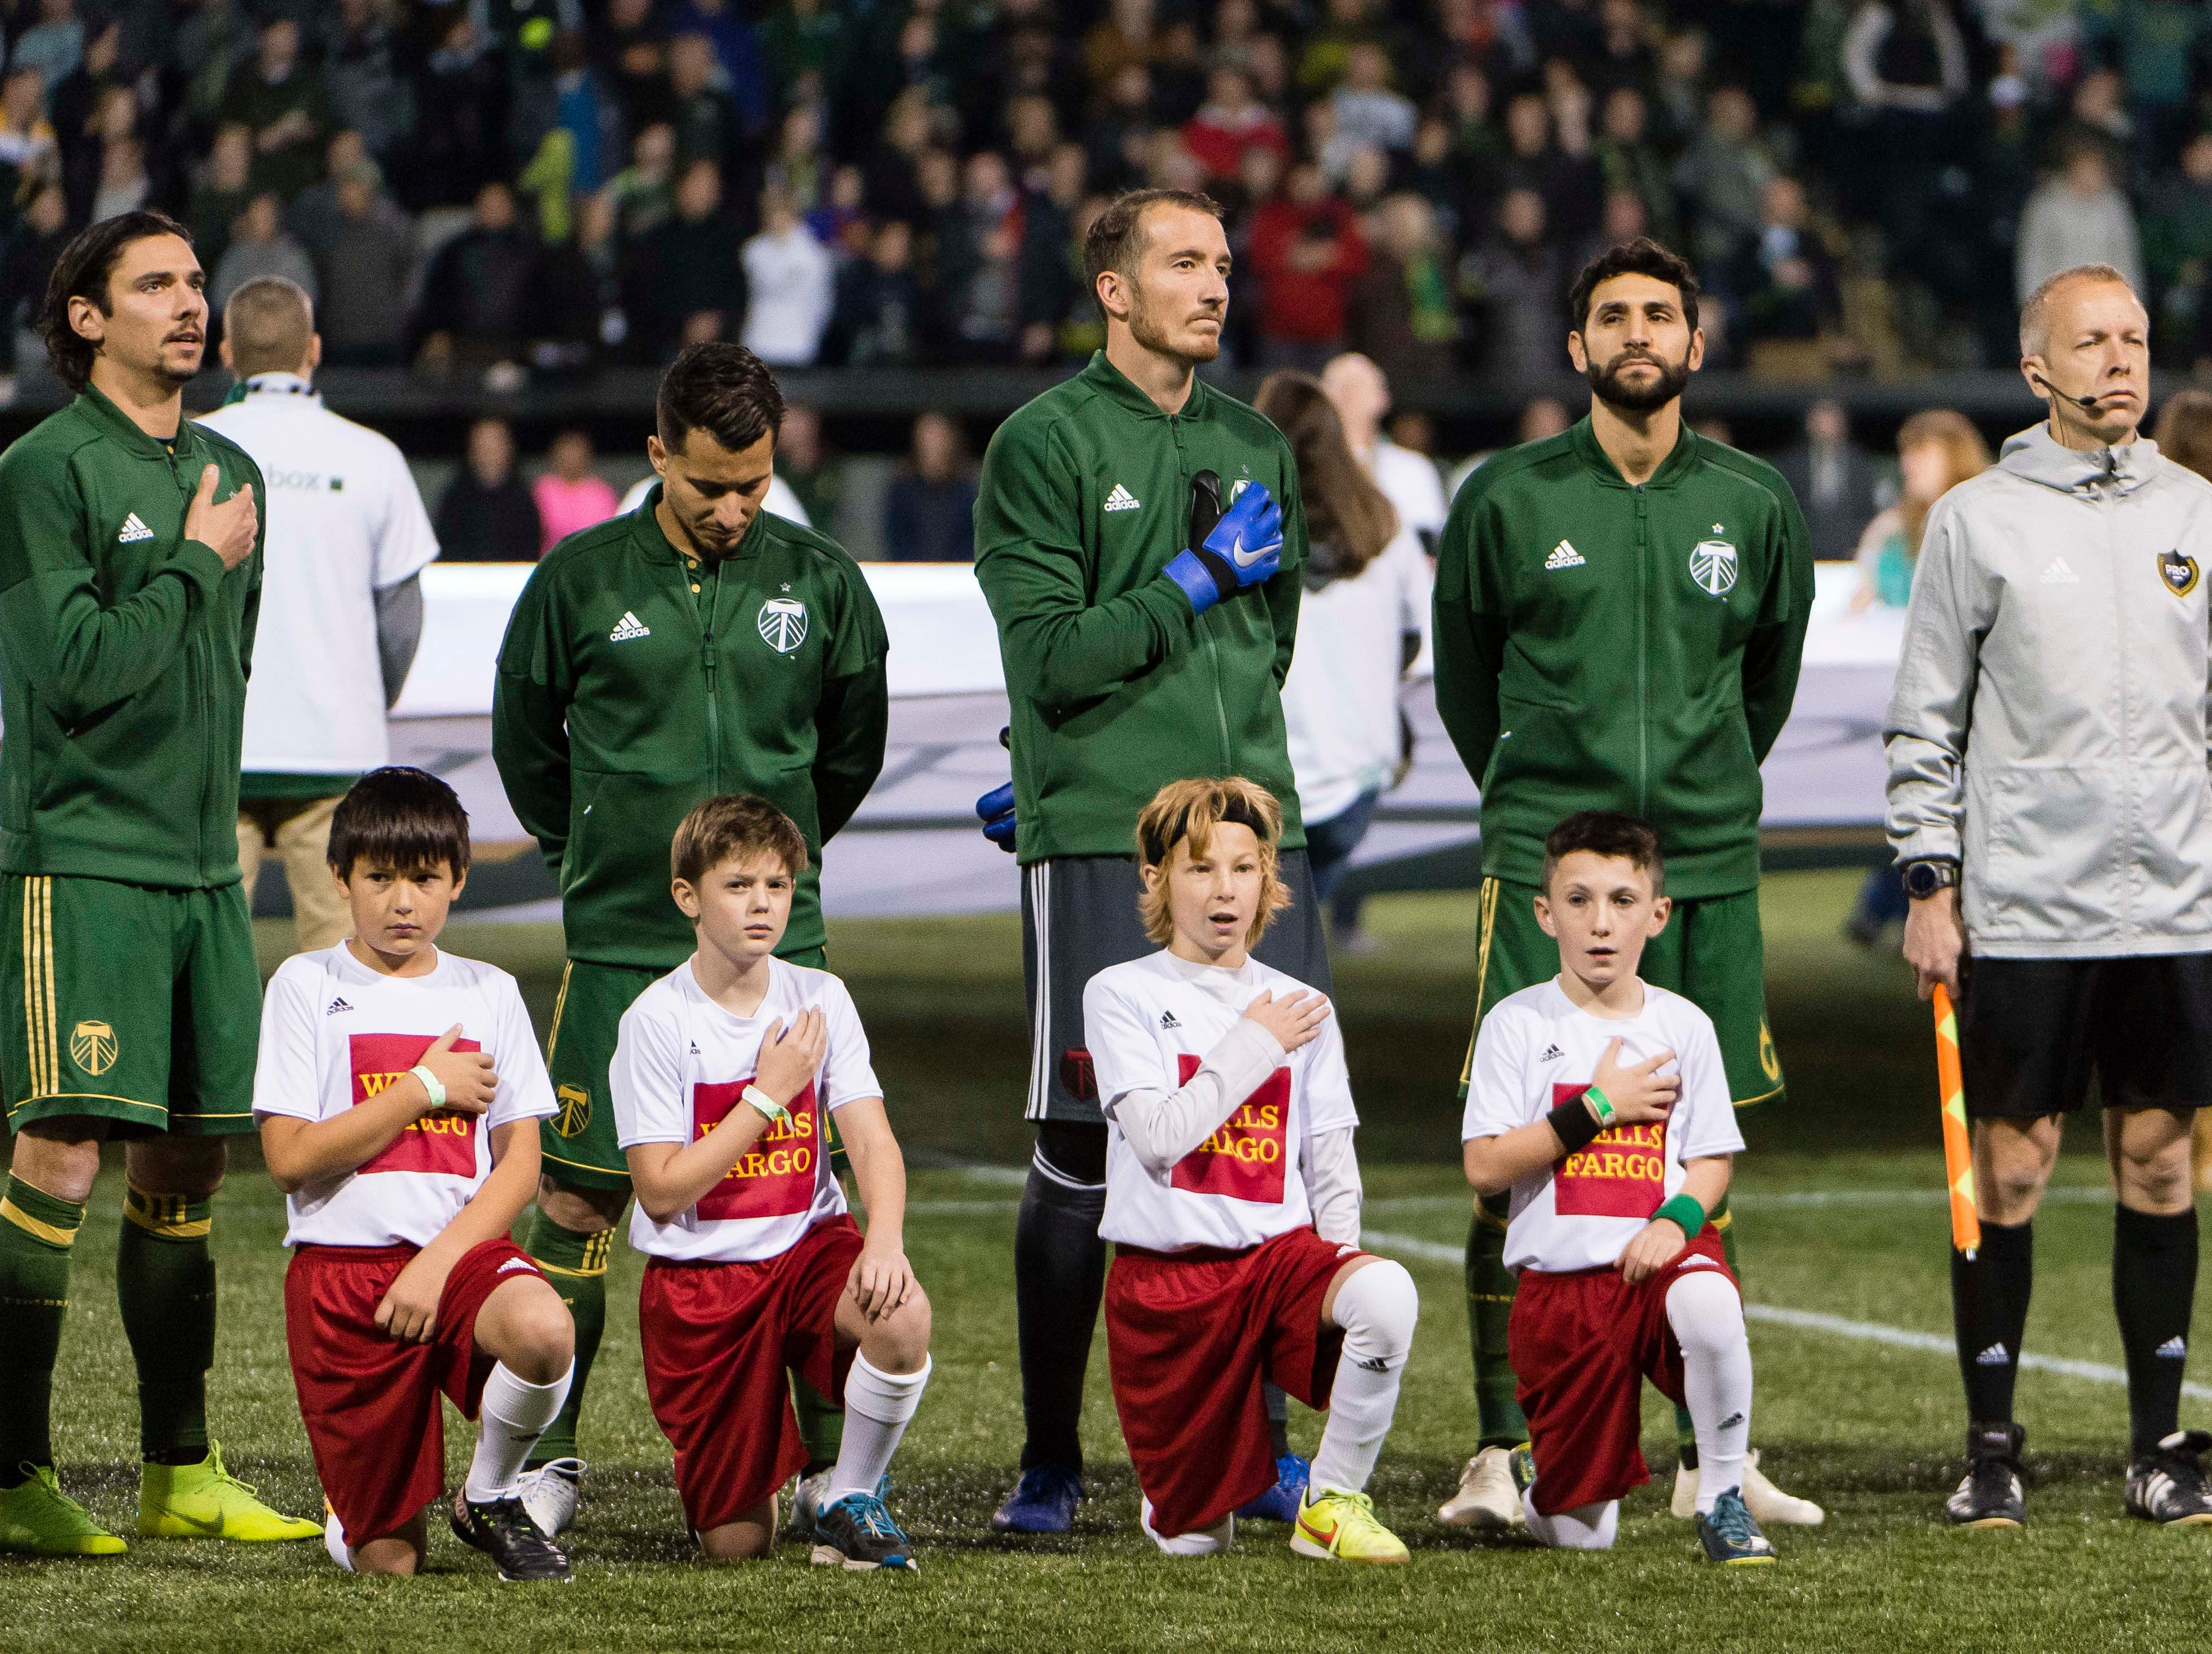 Nov 25, 2018; Portland, OR, USA; The Portland Timbers stand during the playing of the National Anthem before a game against Sporting Kansas City in the first leg of the MLS Western Conference Championship at Providence Park. The game ended tied 0-0.  Mandatory Credit: Troy Wayrynen-USA TODAY Sports